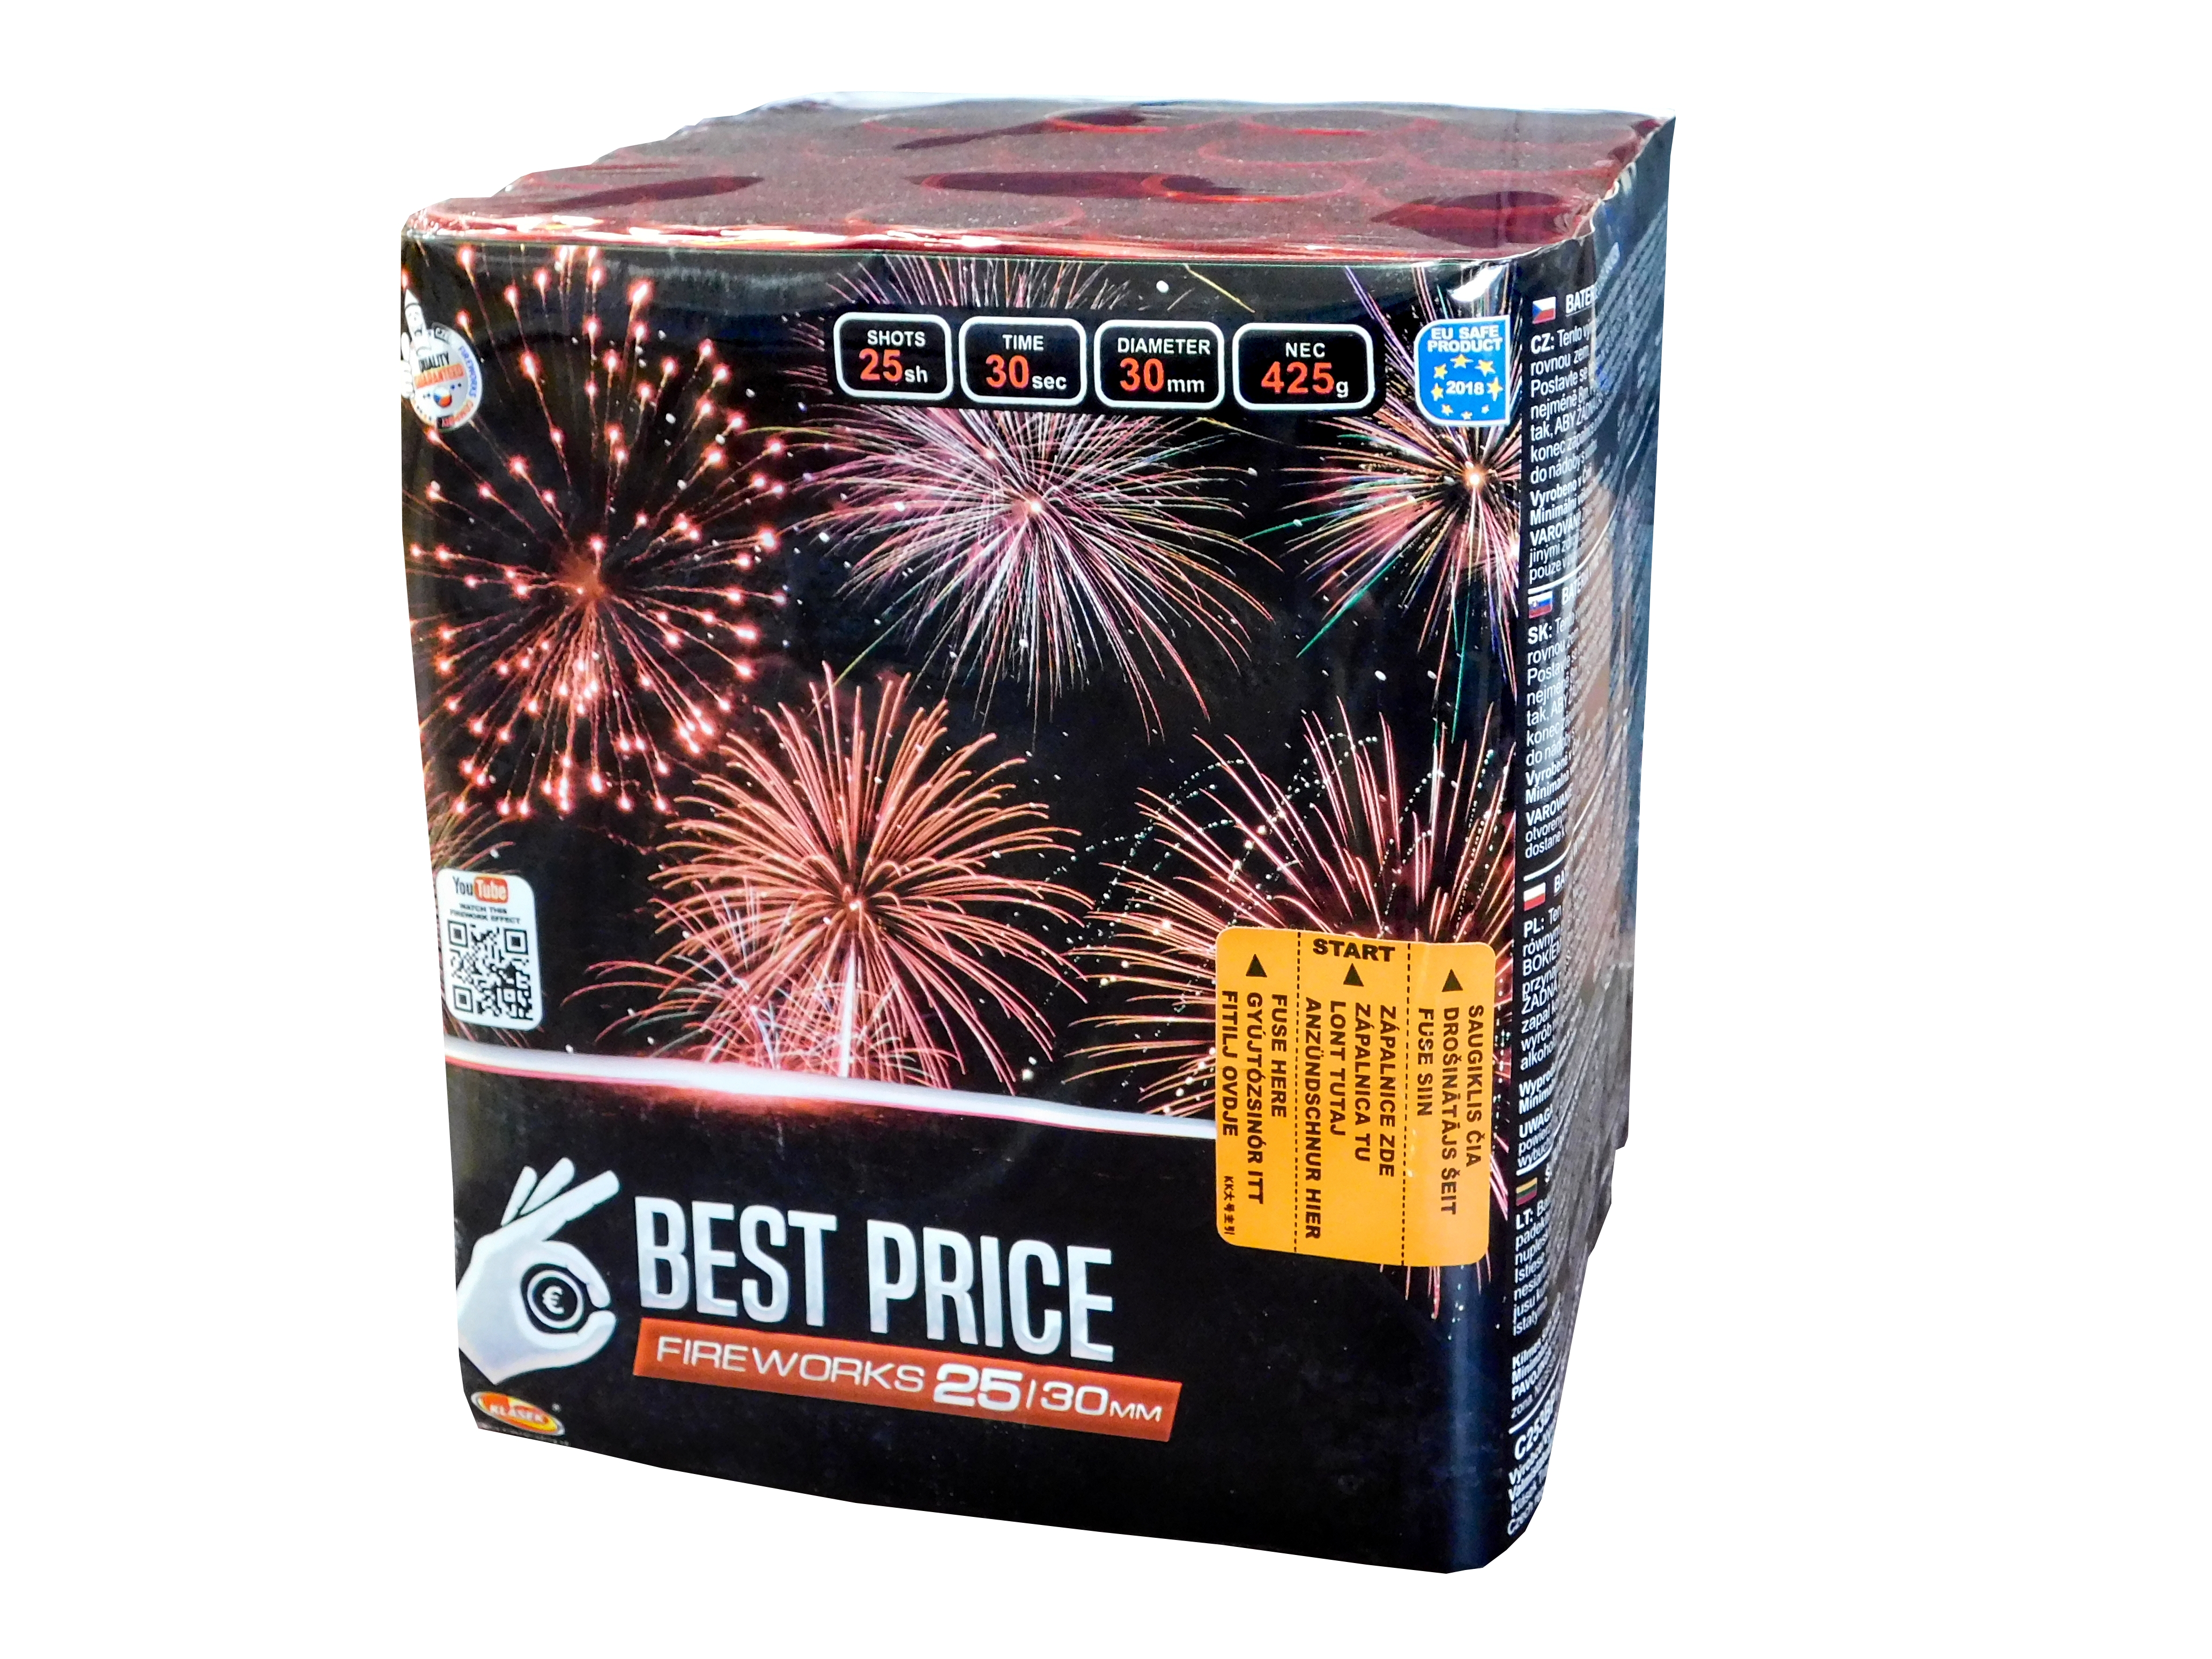 Pyrotechnika Kompakt 25ran / 30mm Best Price